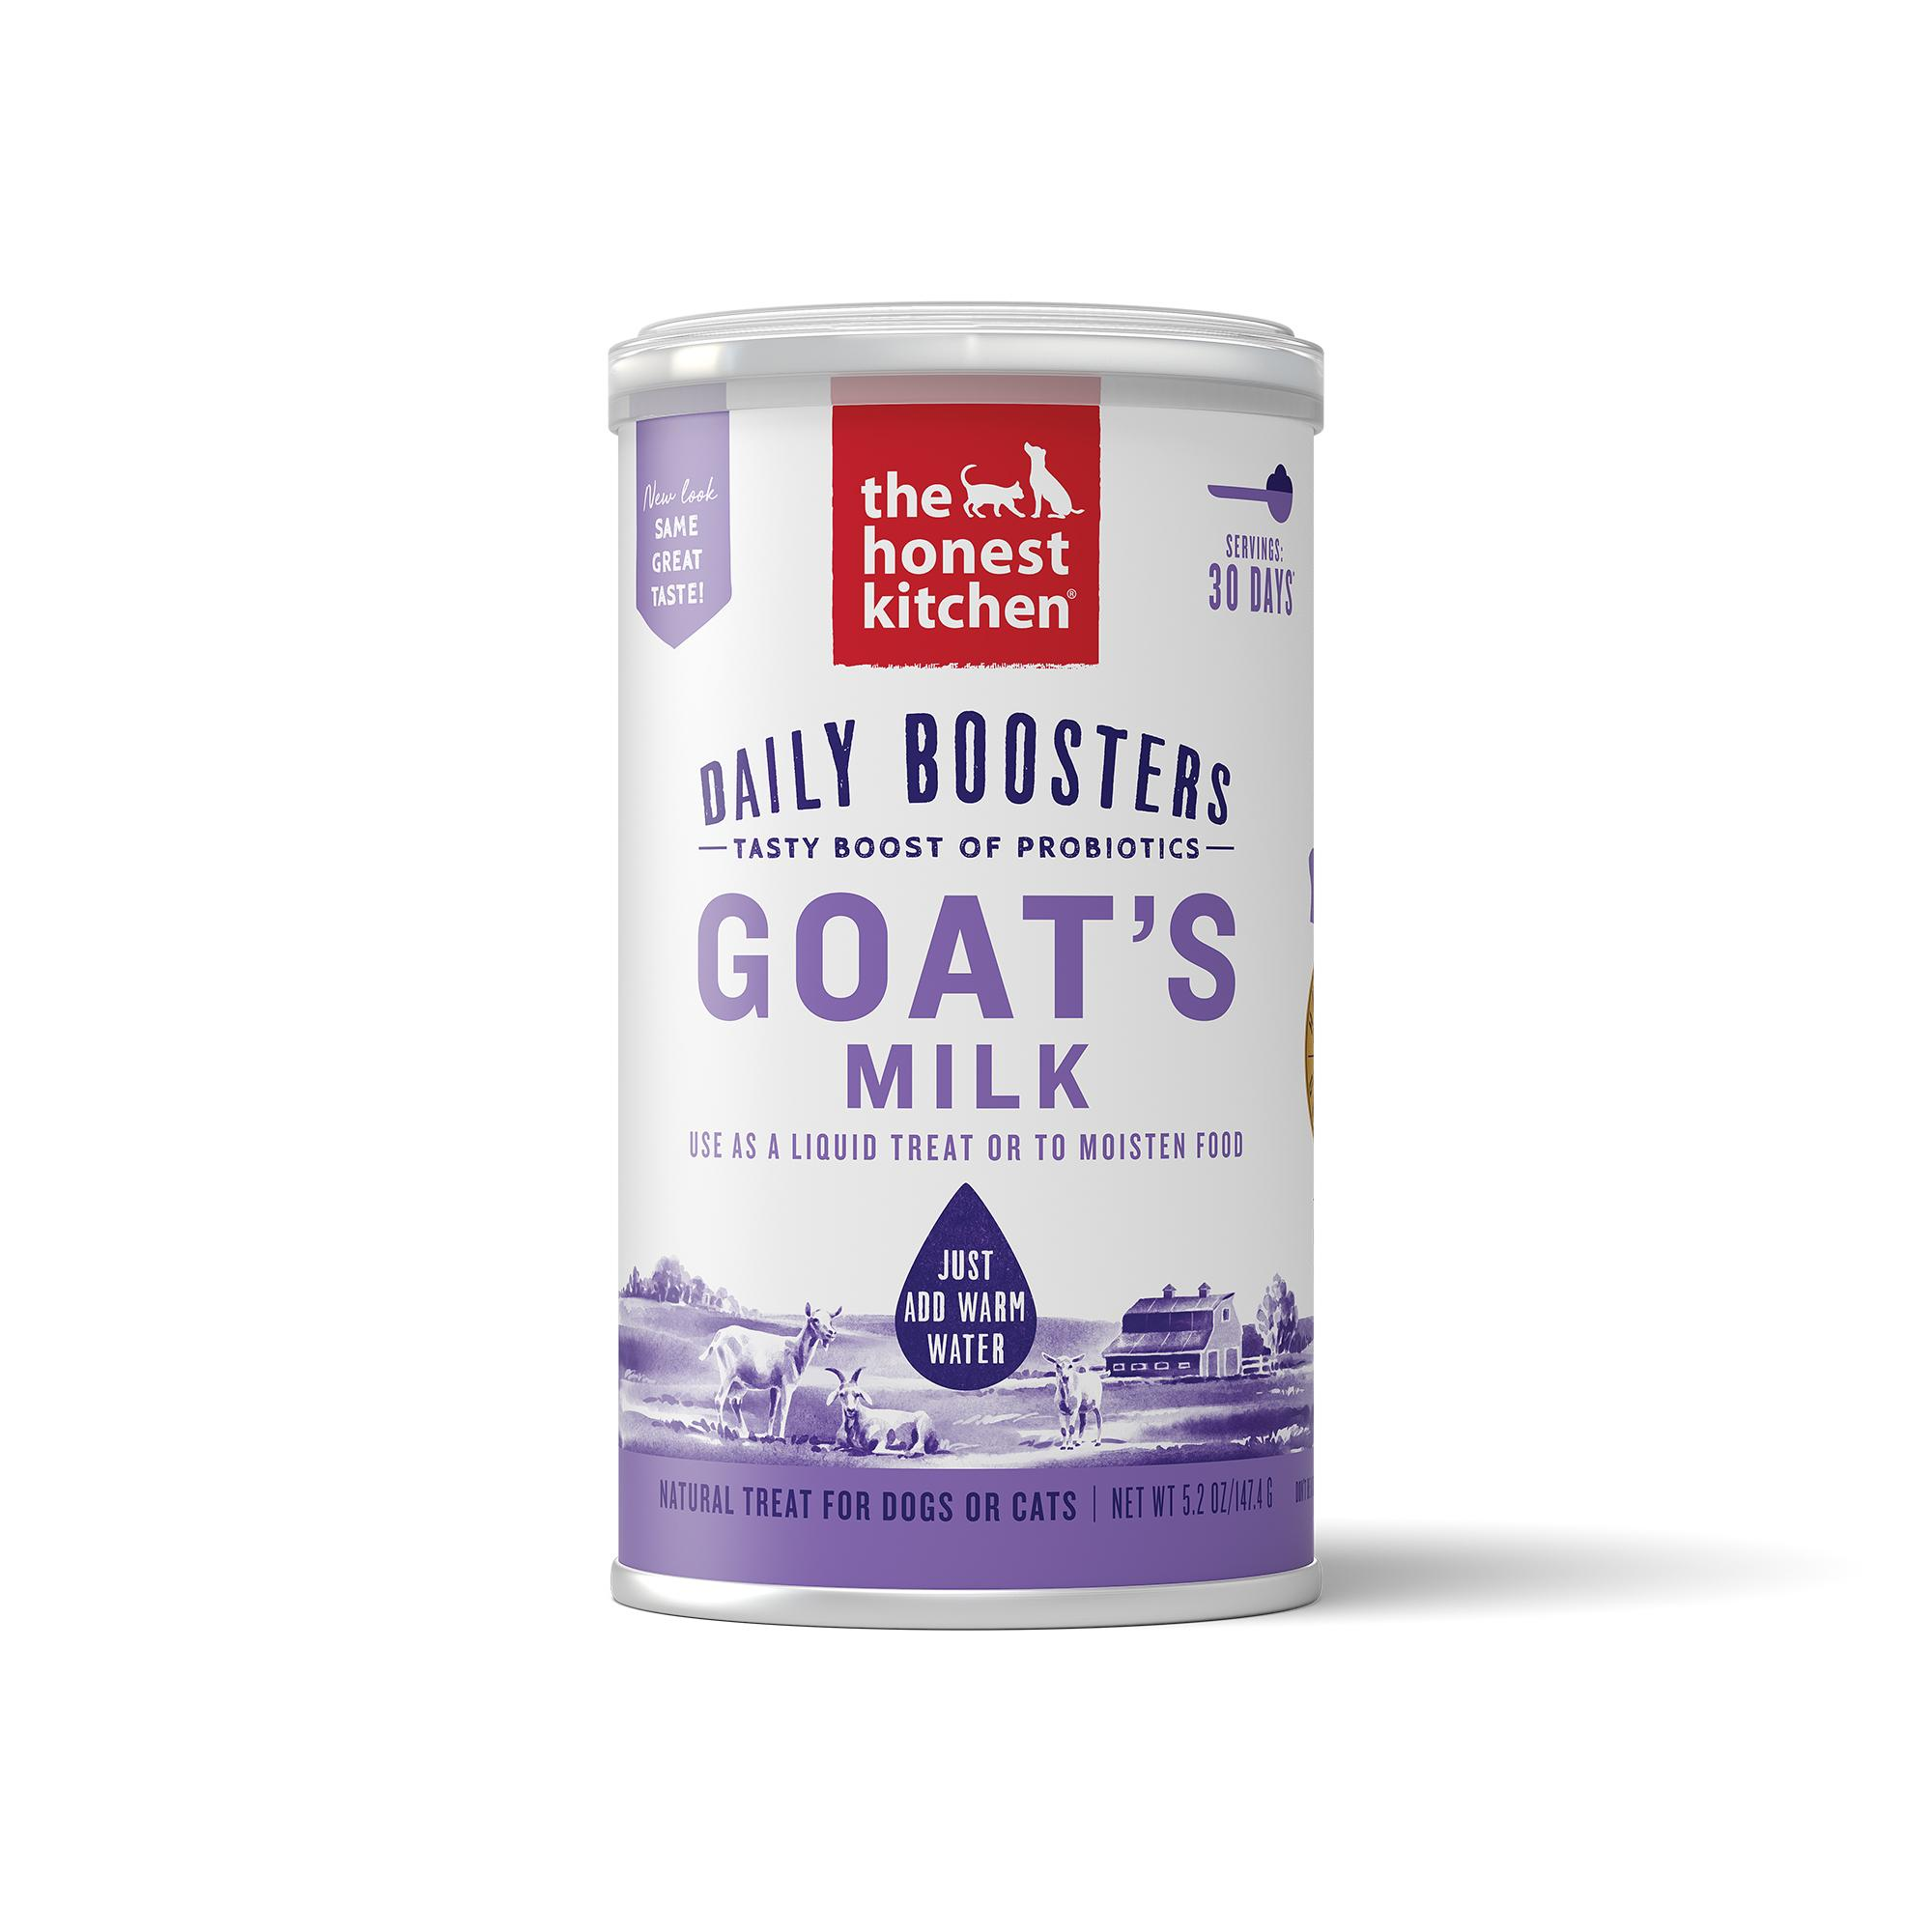 The Honest Kitchen Daily Boosters Instant Goat's Milk with Probiotics for Dogs & Cats, 5.2-oz (Size: 5.2-oz) Image